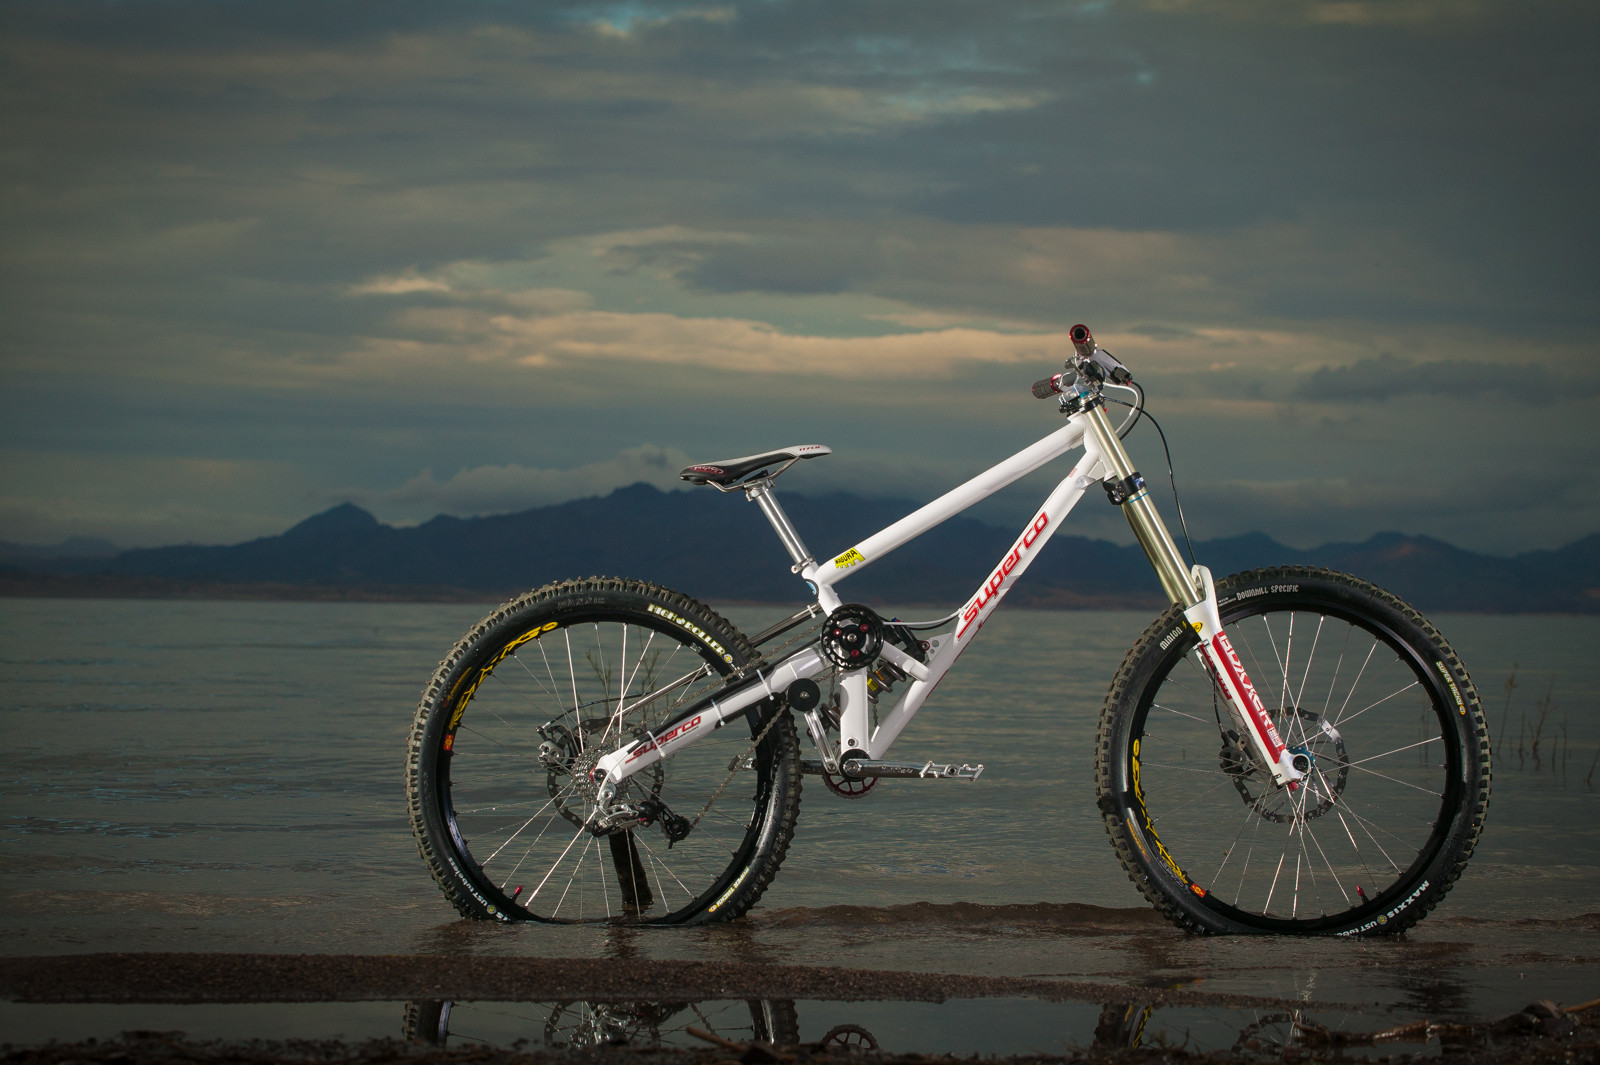 Flashback - Superco Silencer Prototype DH Bike - Flashback - Superco Silencer Prototype DH Bike - Mountain Biking Pictures - Vital MTB